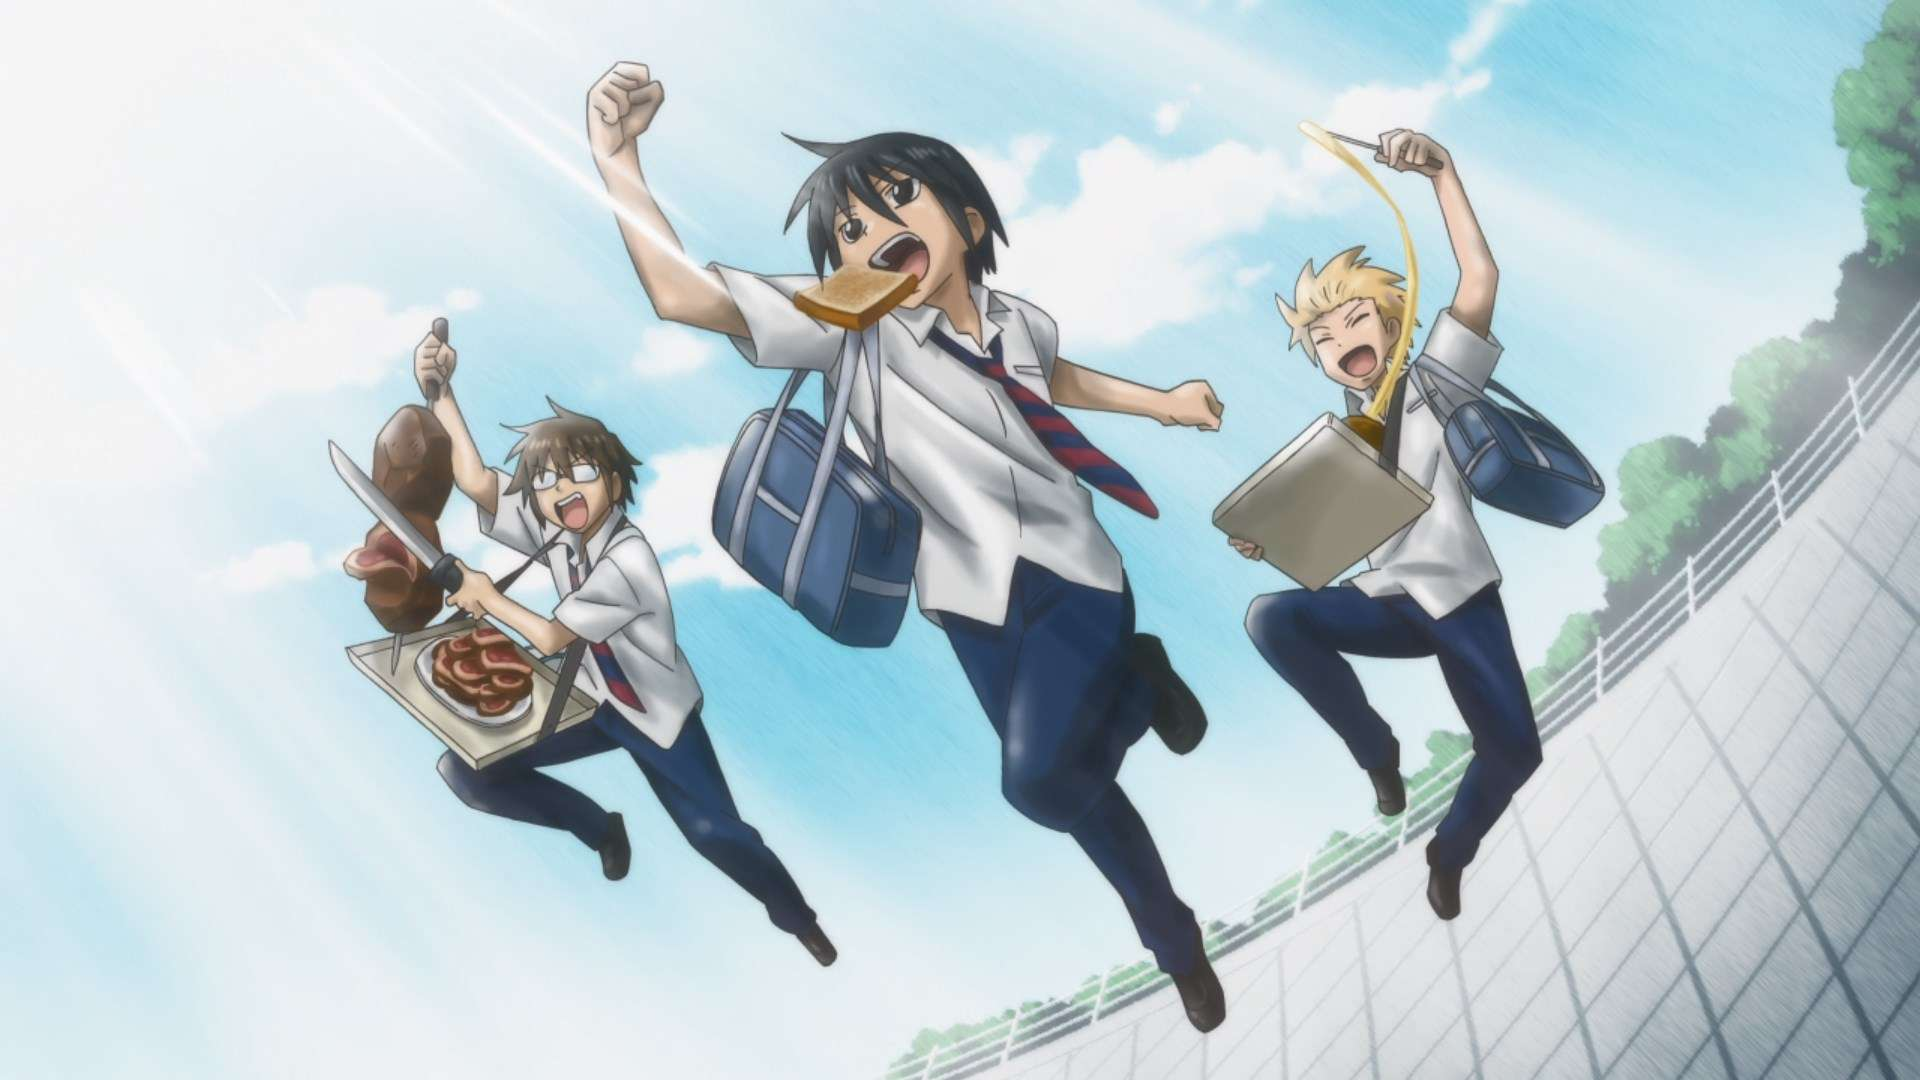 Ulasan Anime Daily Life Of High School Boys Kisah Asyik Di Sma Kaori Nusantara